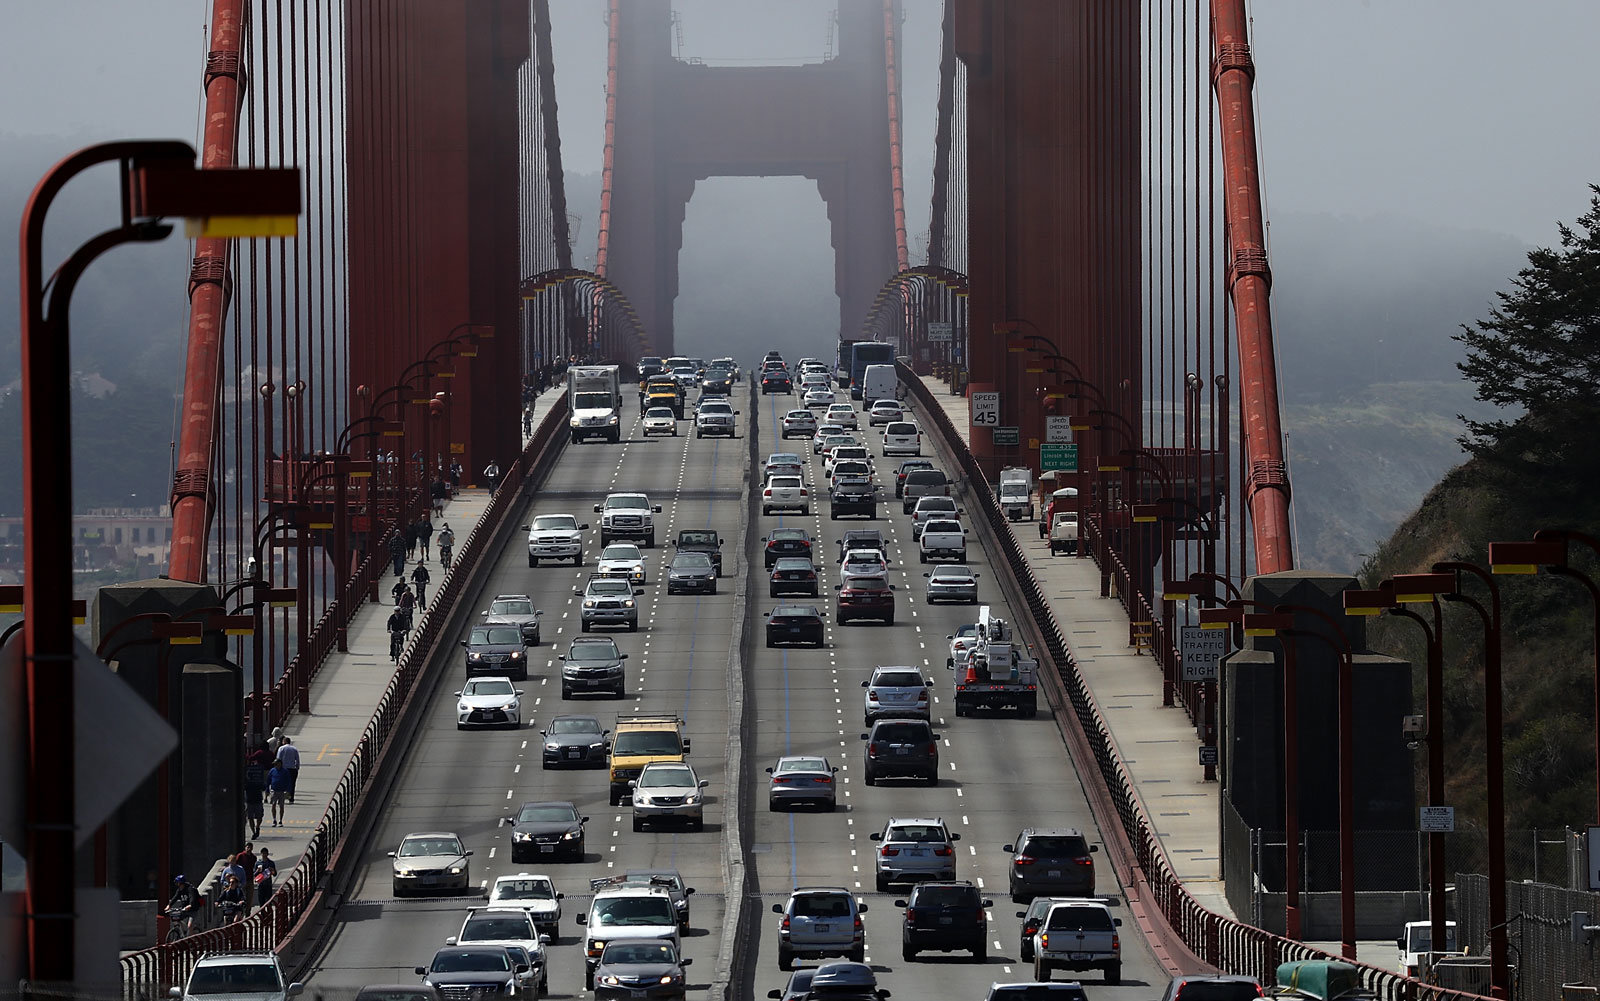 Google is getting into ride sharing in San Francisco.